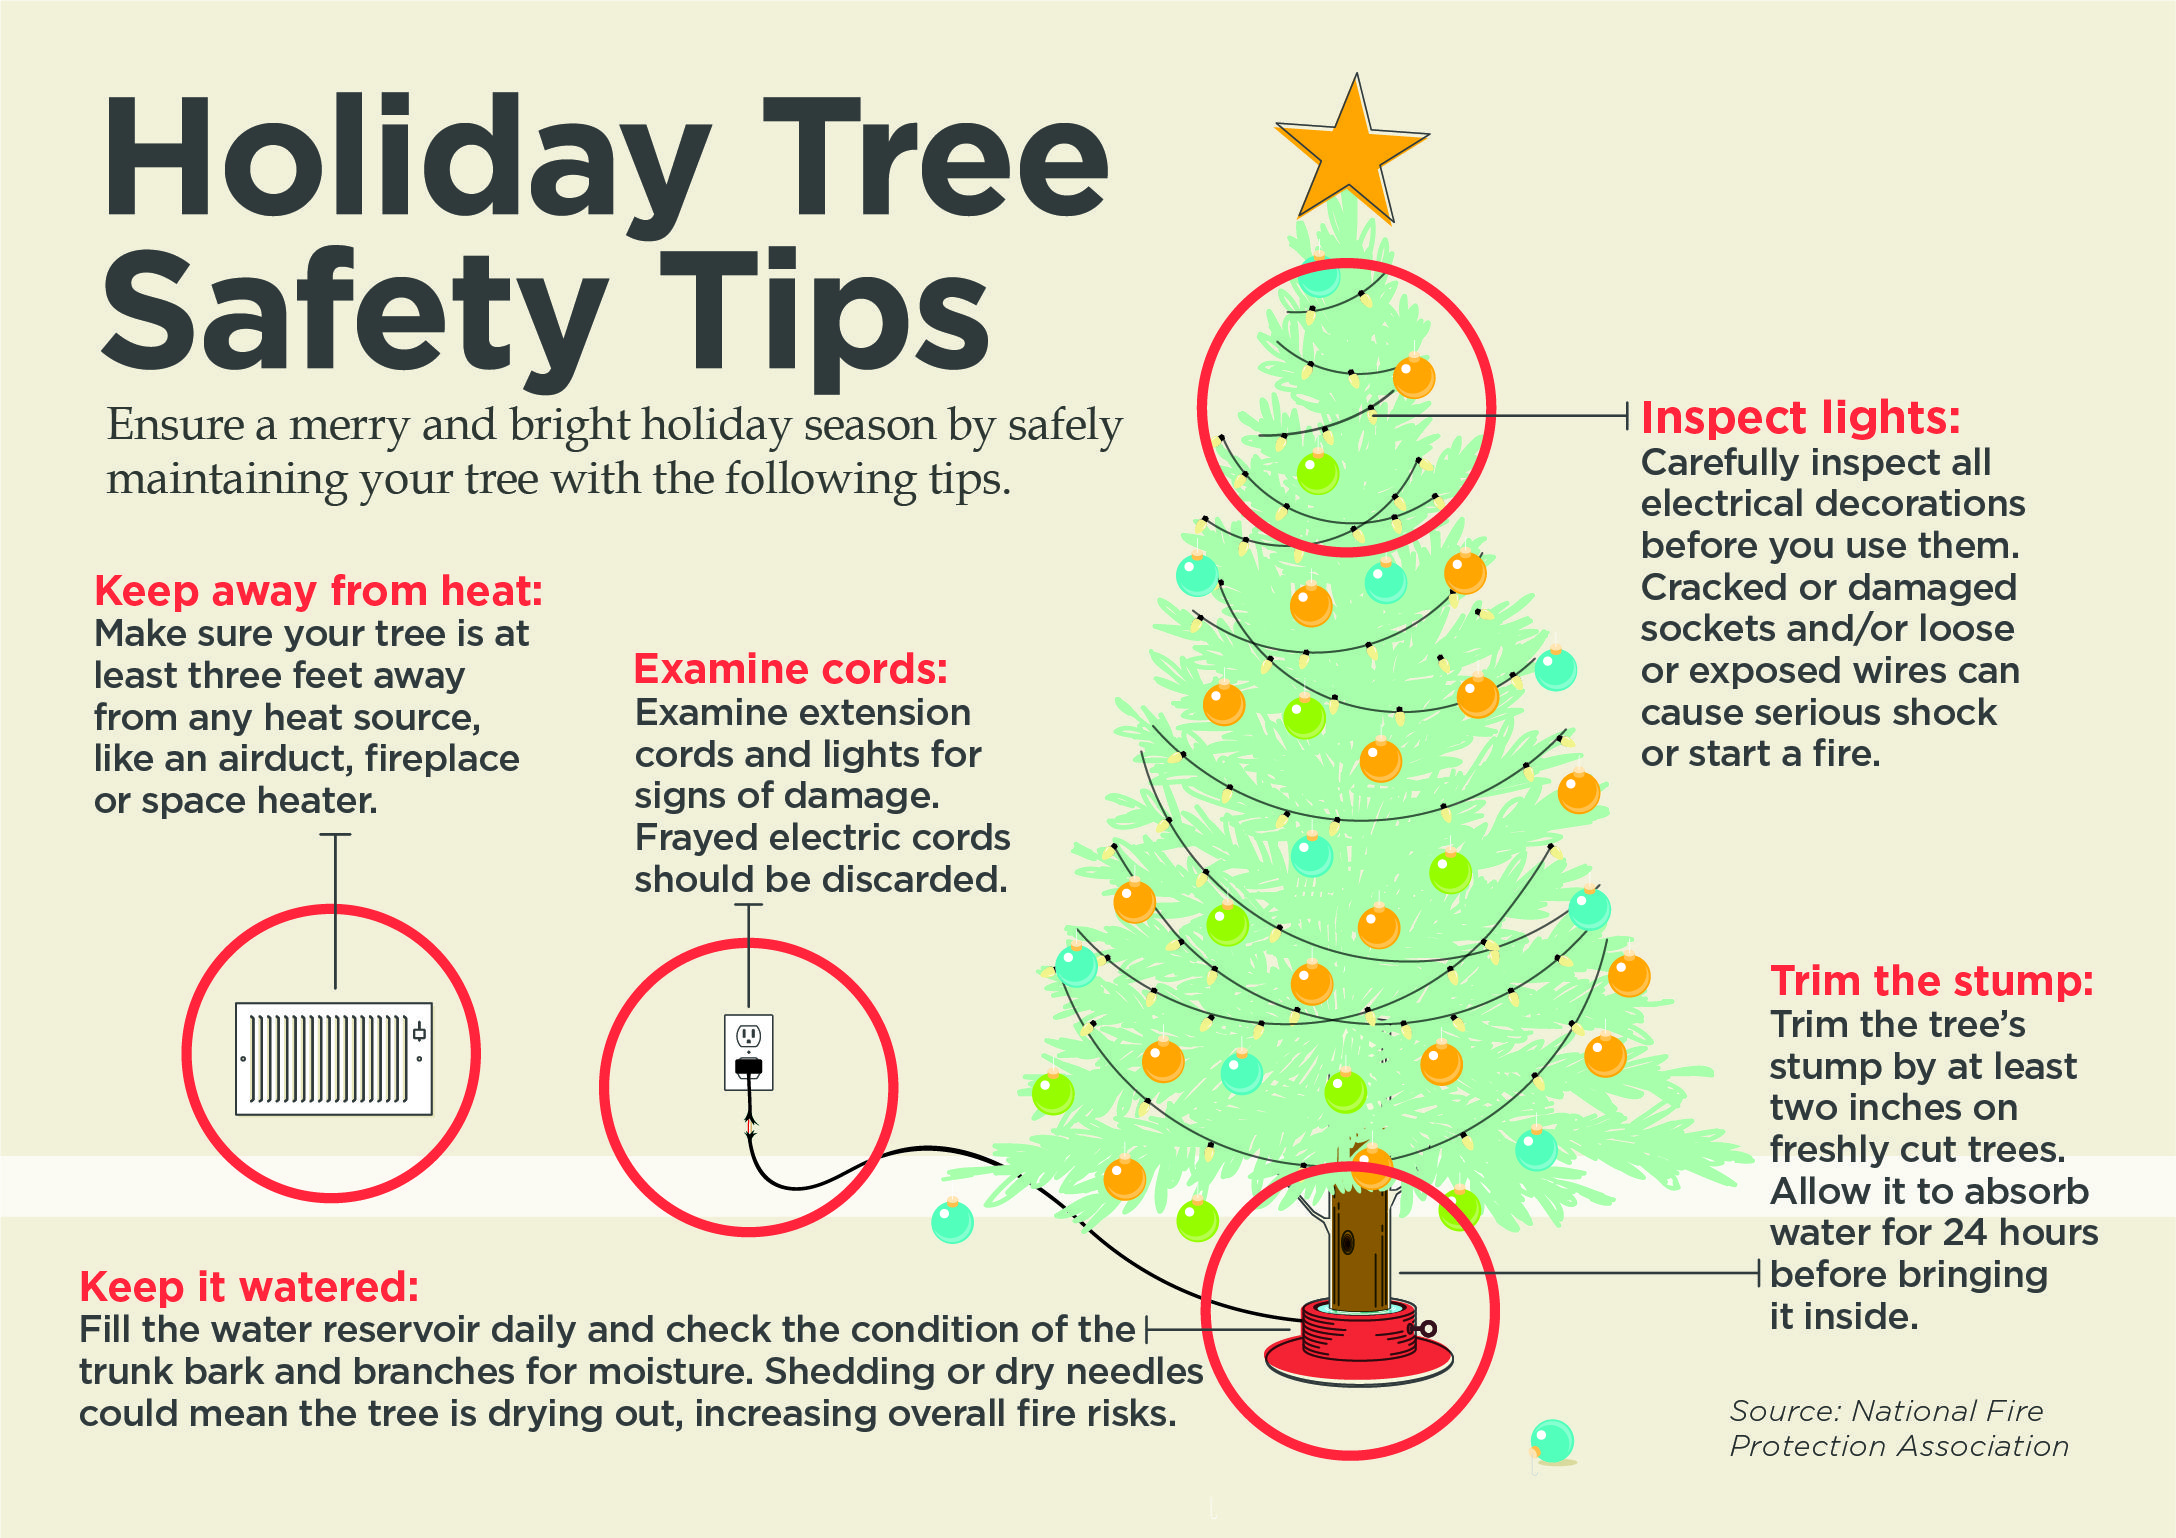 Stay Safe! Remember that Christmas trees are flammable, so